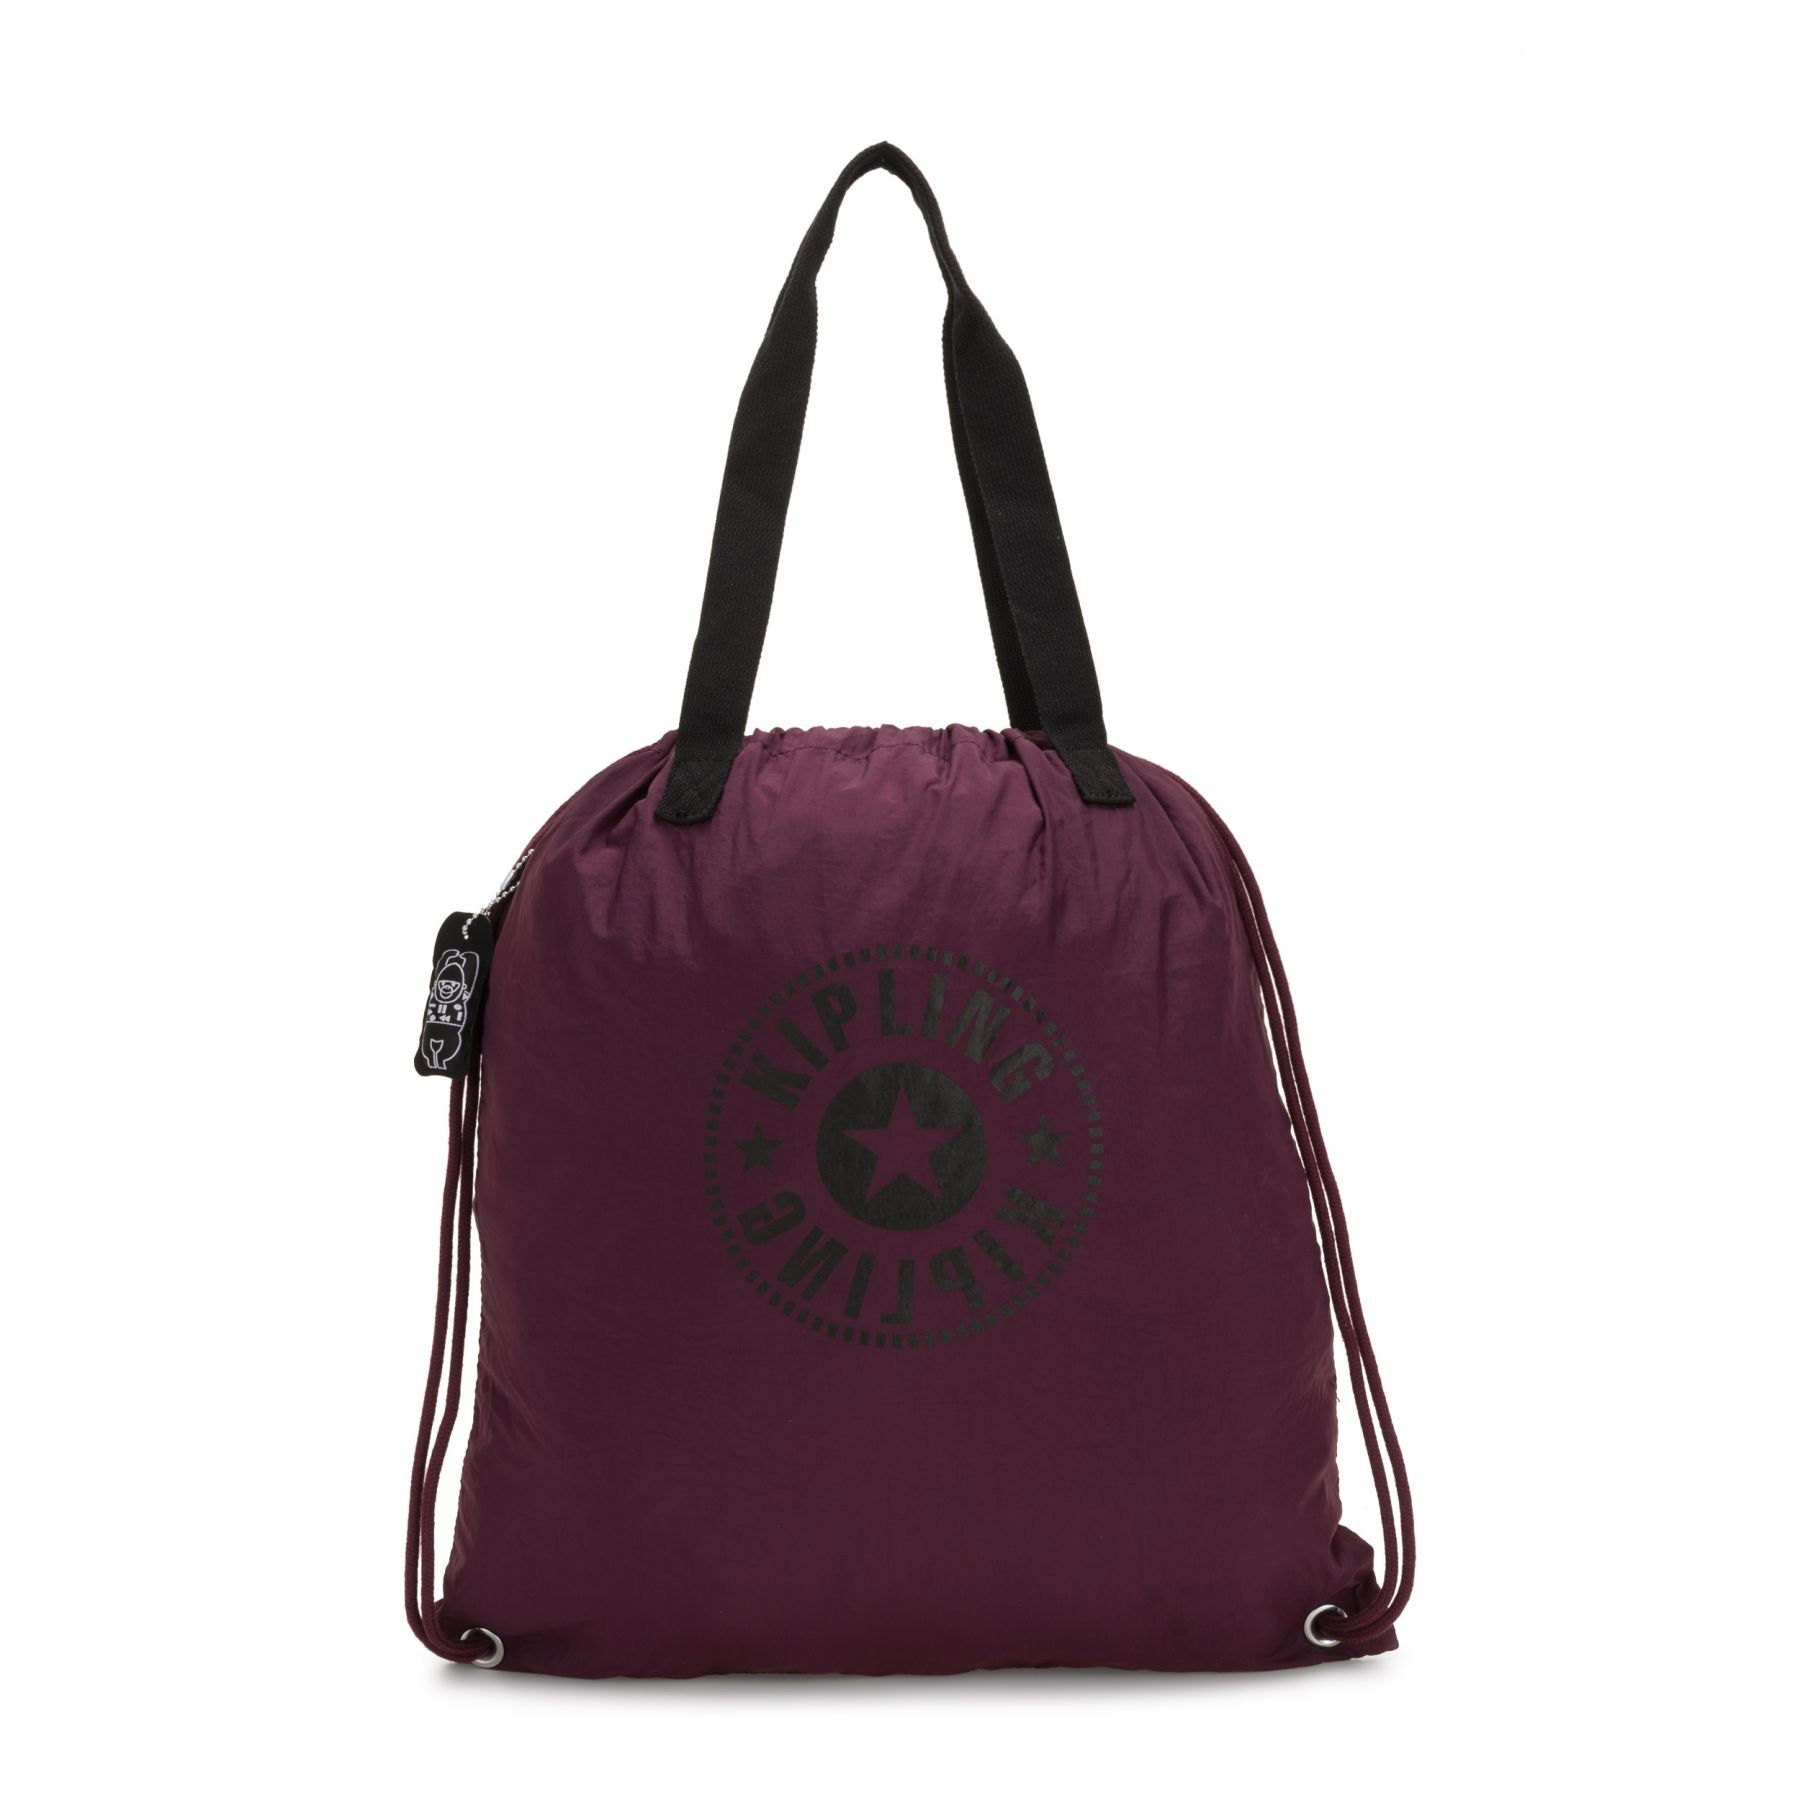 Bolsa Kipling Hiphurray Packable Plum Light